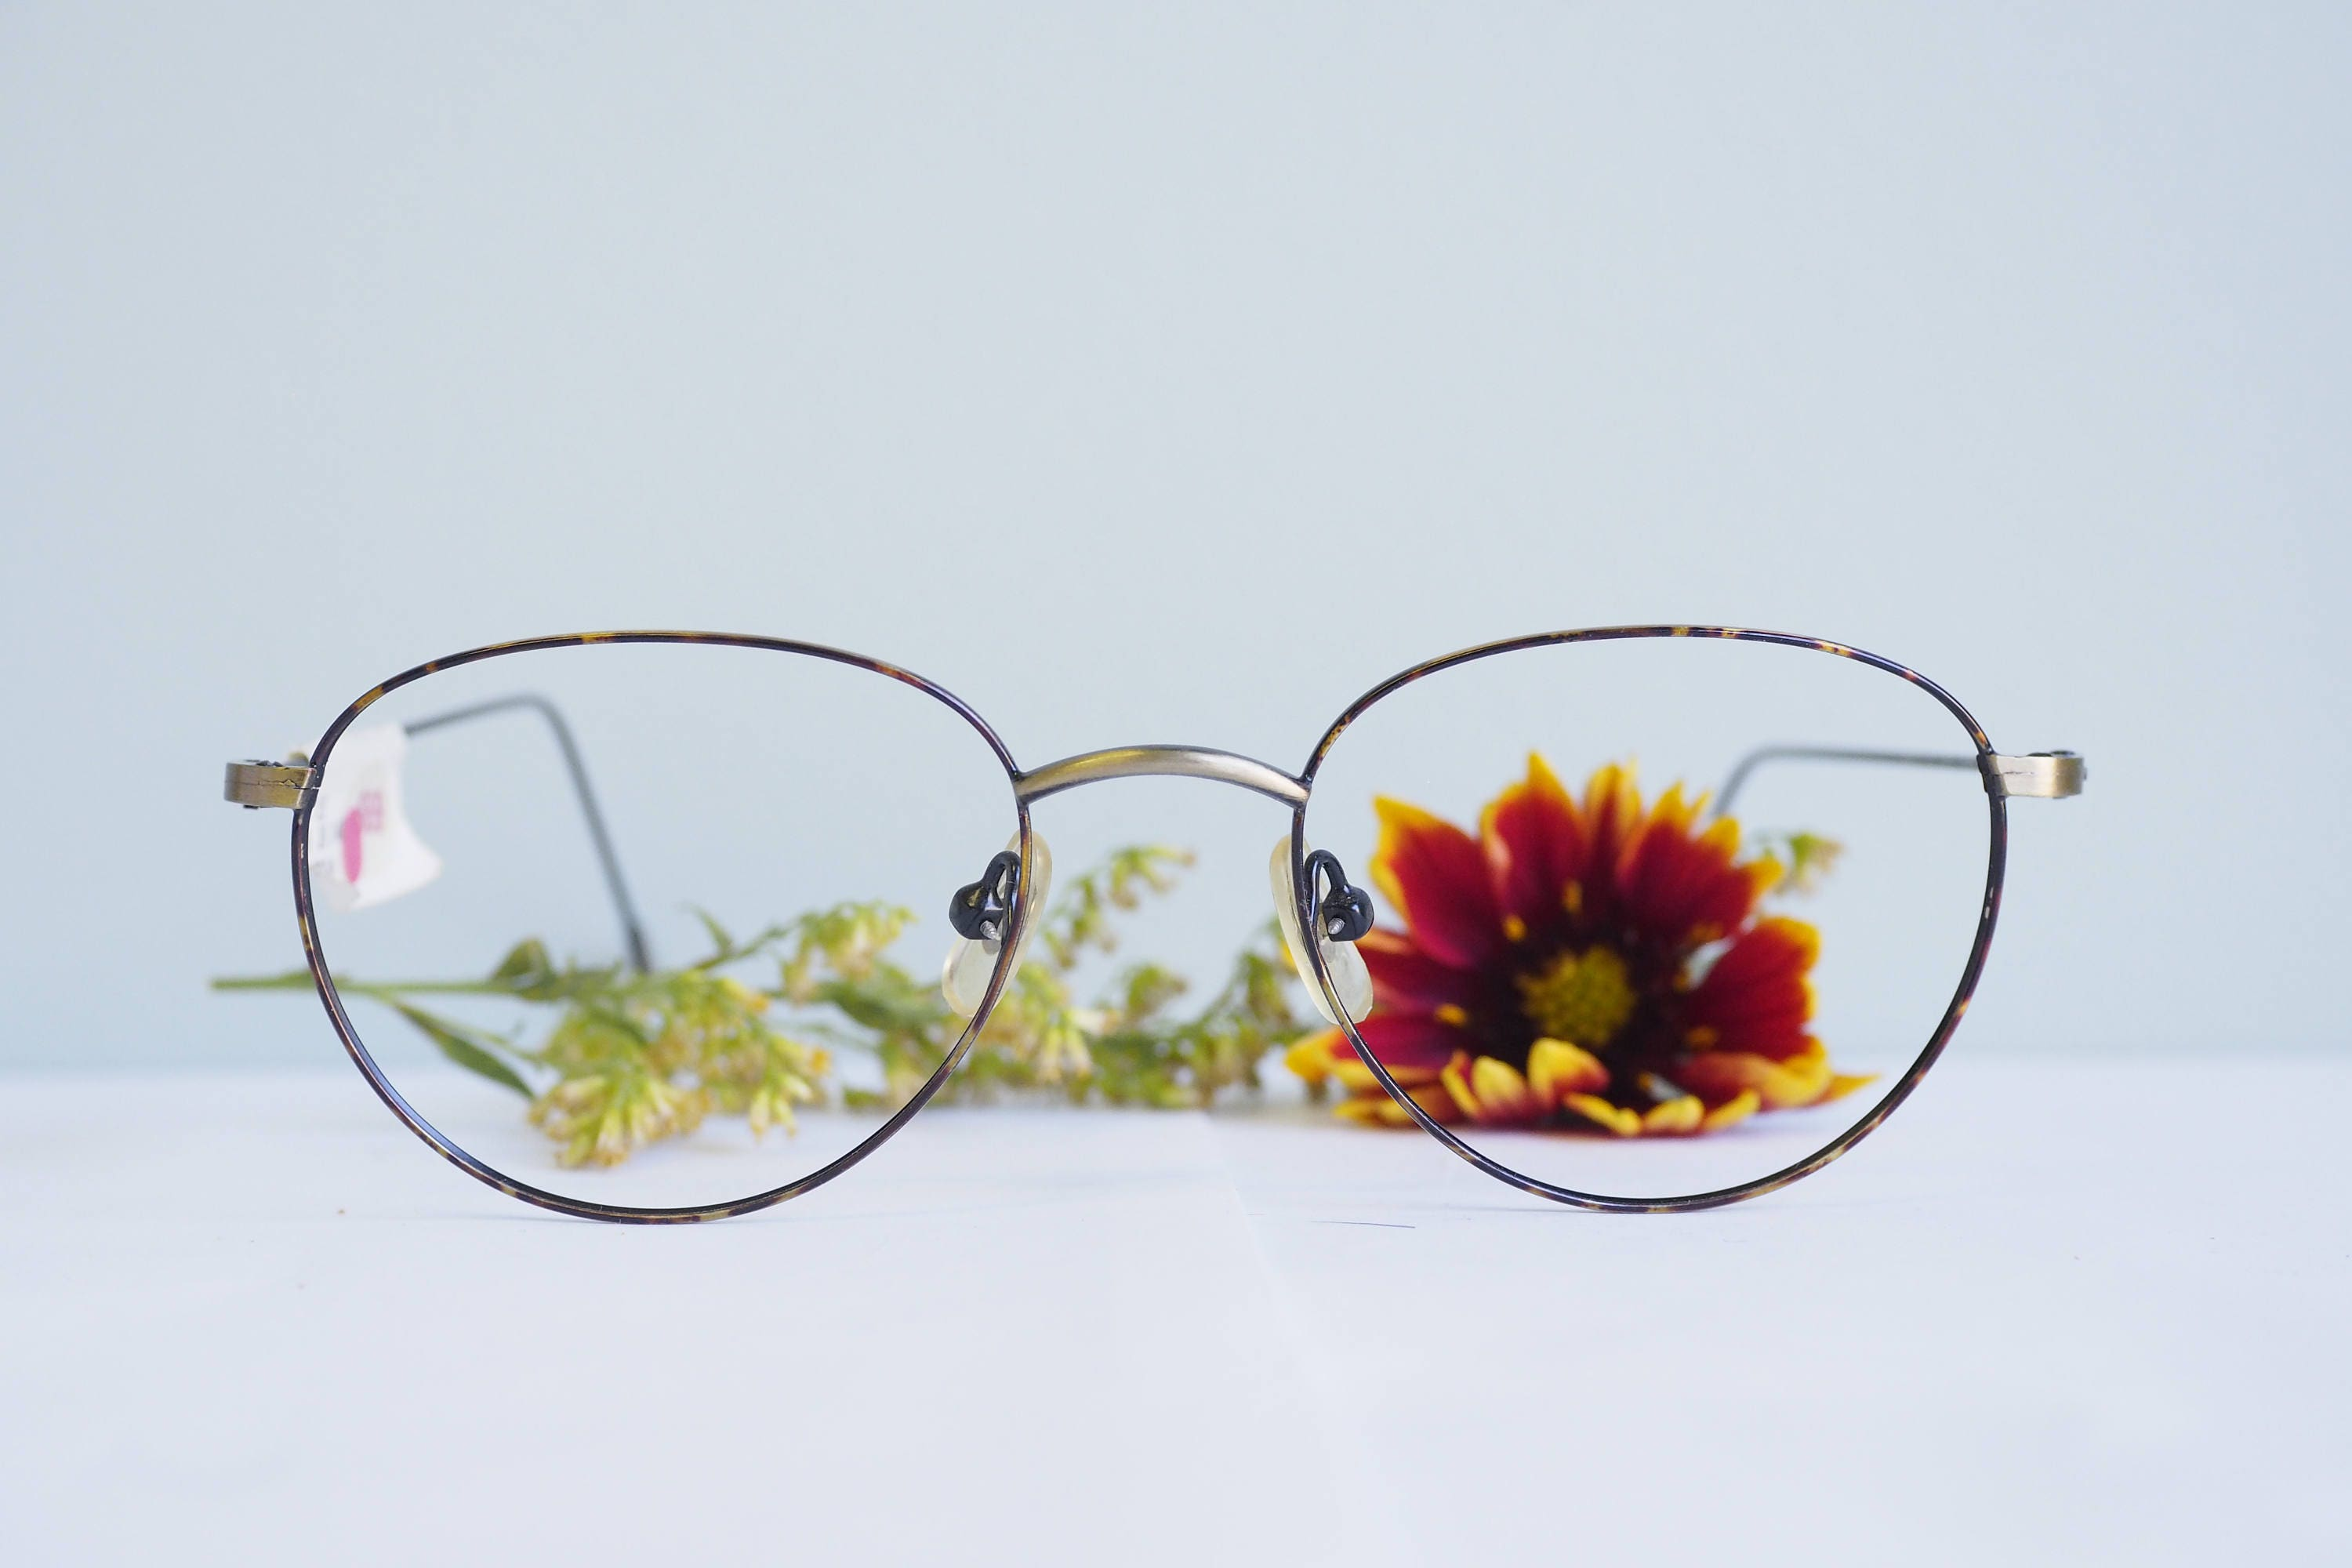 68d155e895b Vintage Eyeglass 1990 s Semi Oval shape Frames New Old Stock Glasses By  Zimco Multi Color Frames